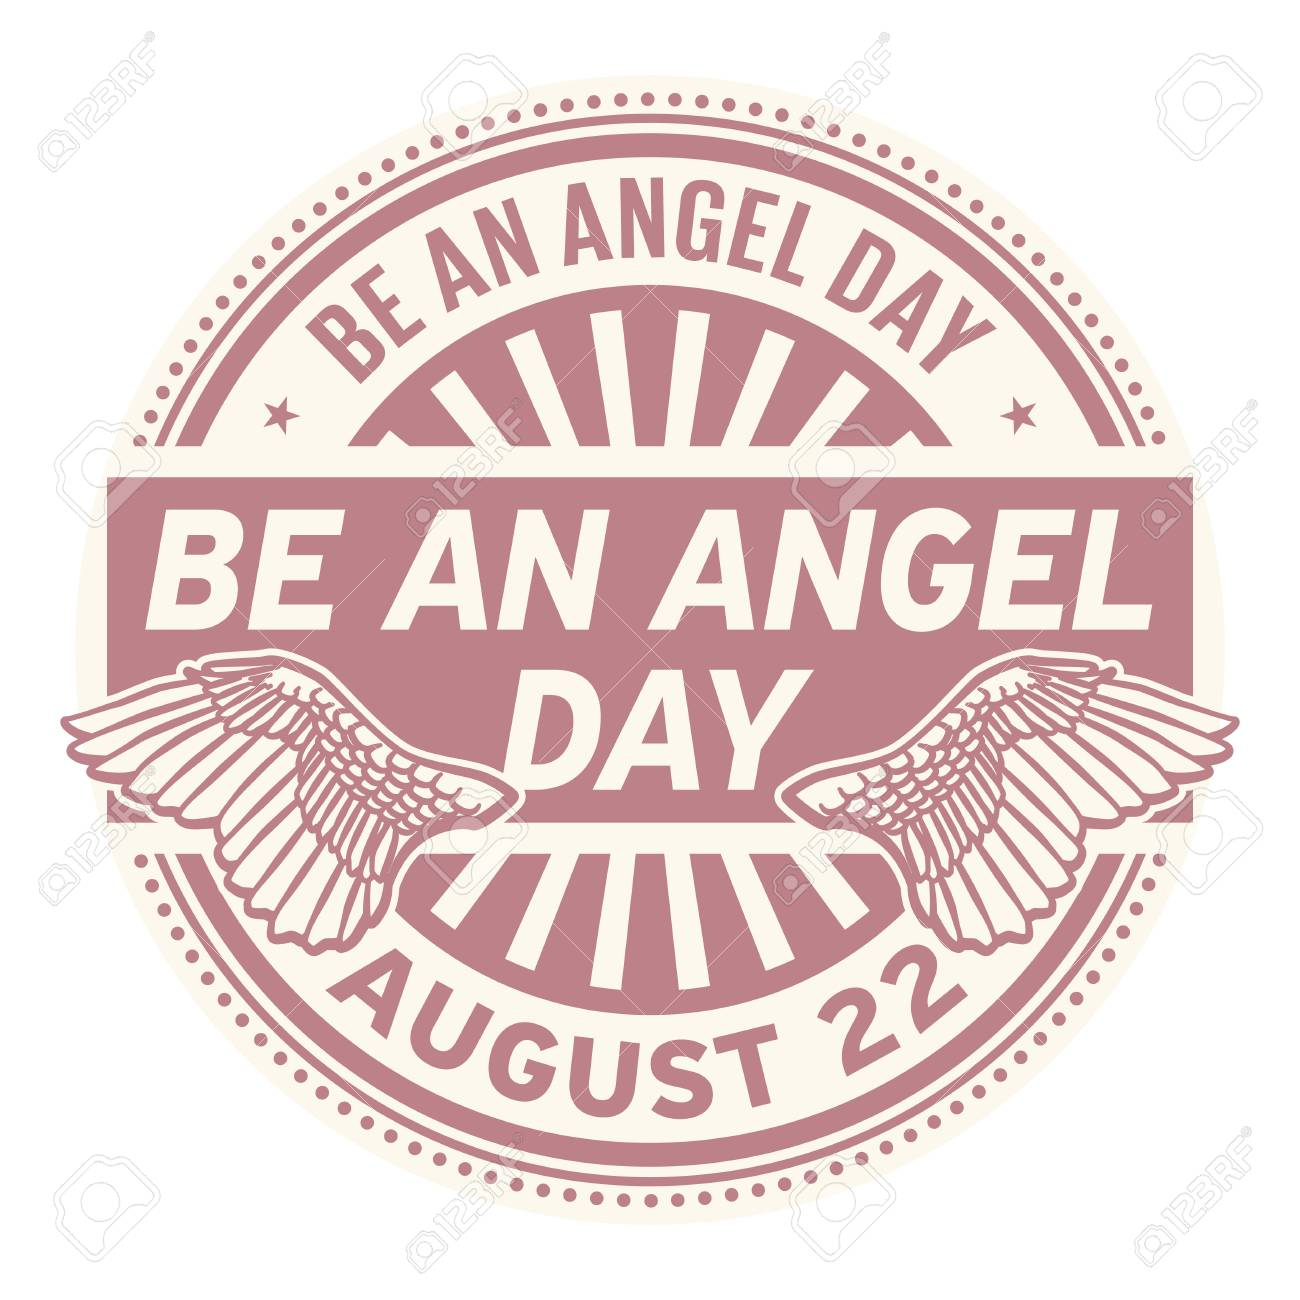 Be An Angel Day August 22 Rubber Stamp Vector Illustration Stock